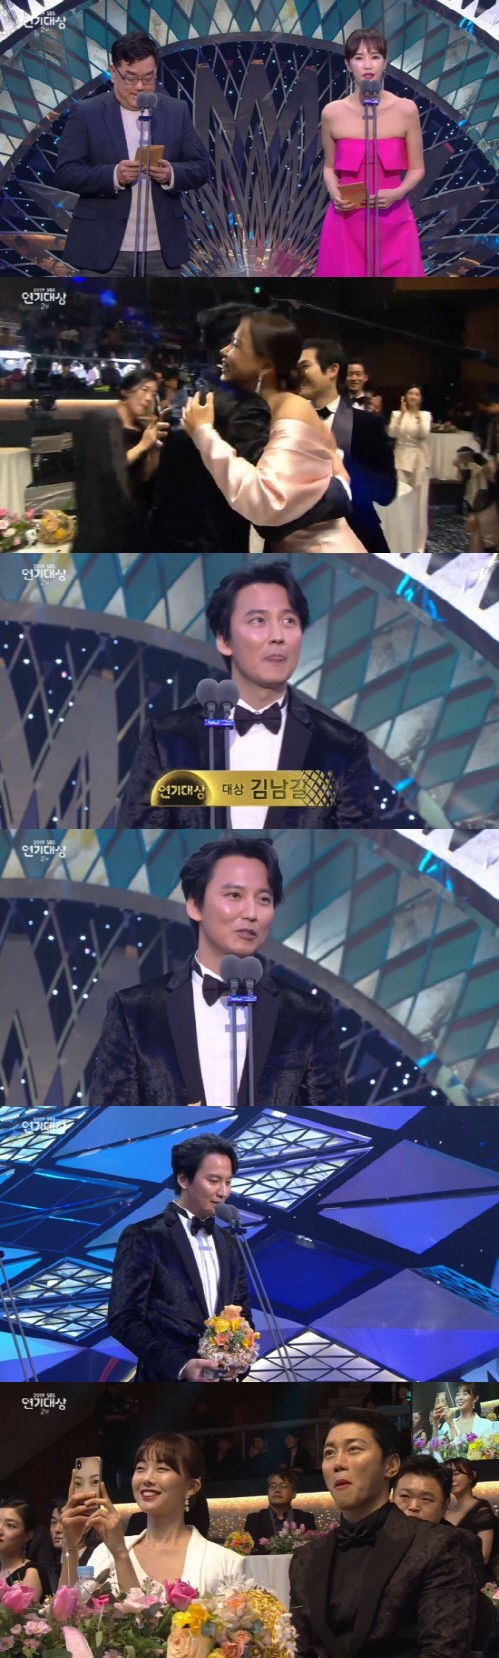 Actor Kim Namgil won the Daesang for his work 'The Fiery Priest' at 2019 SBS Drama Awards!